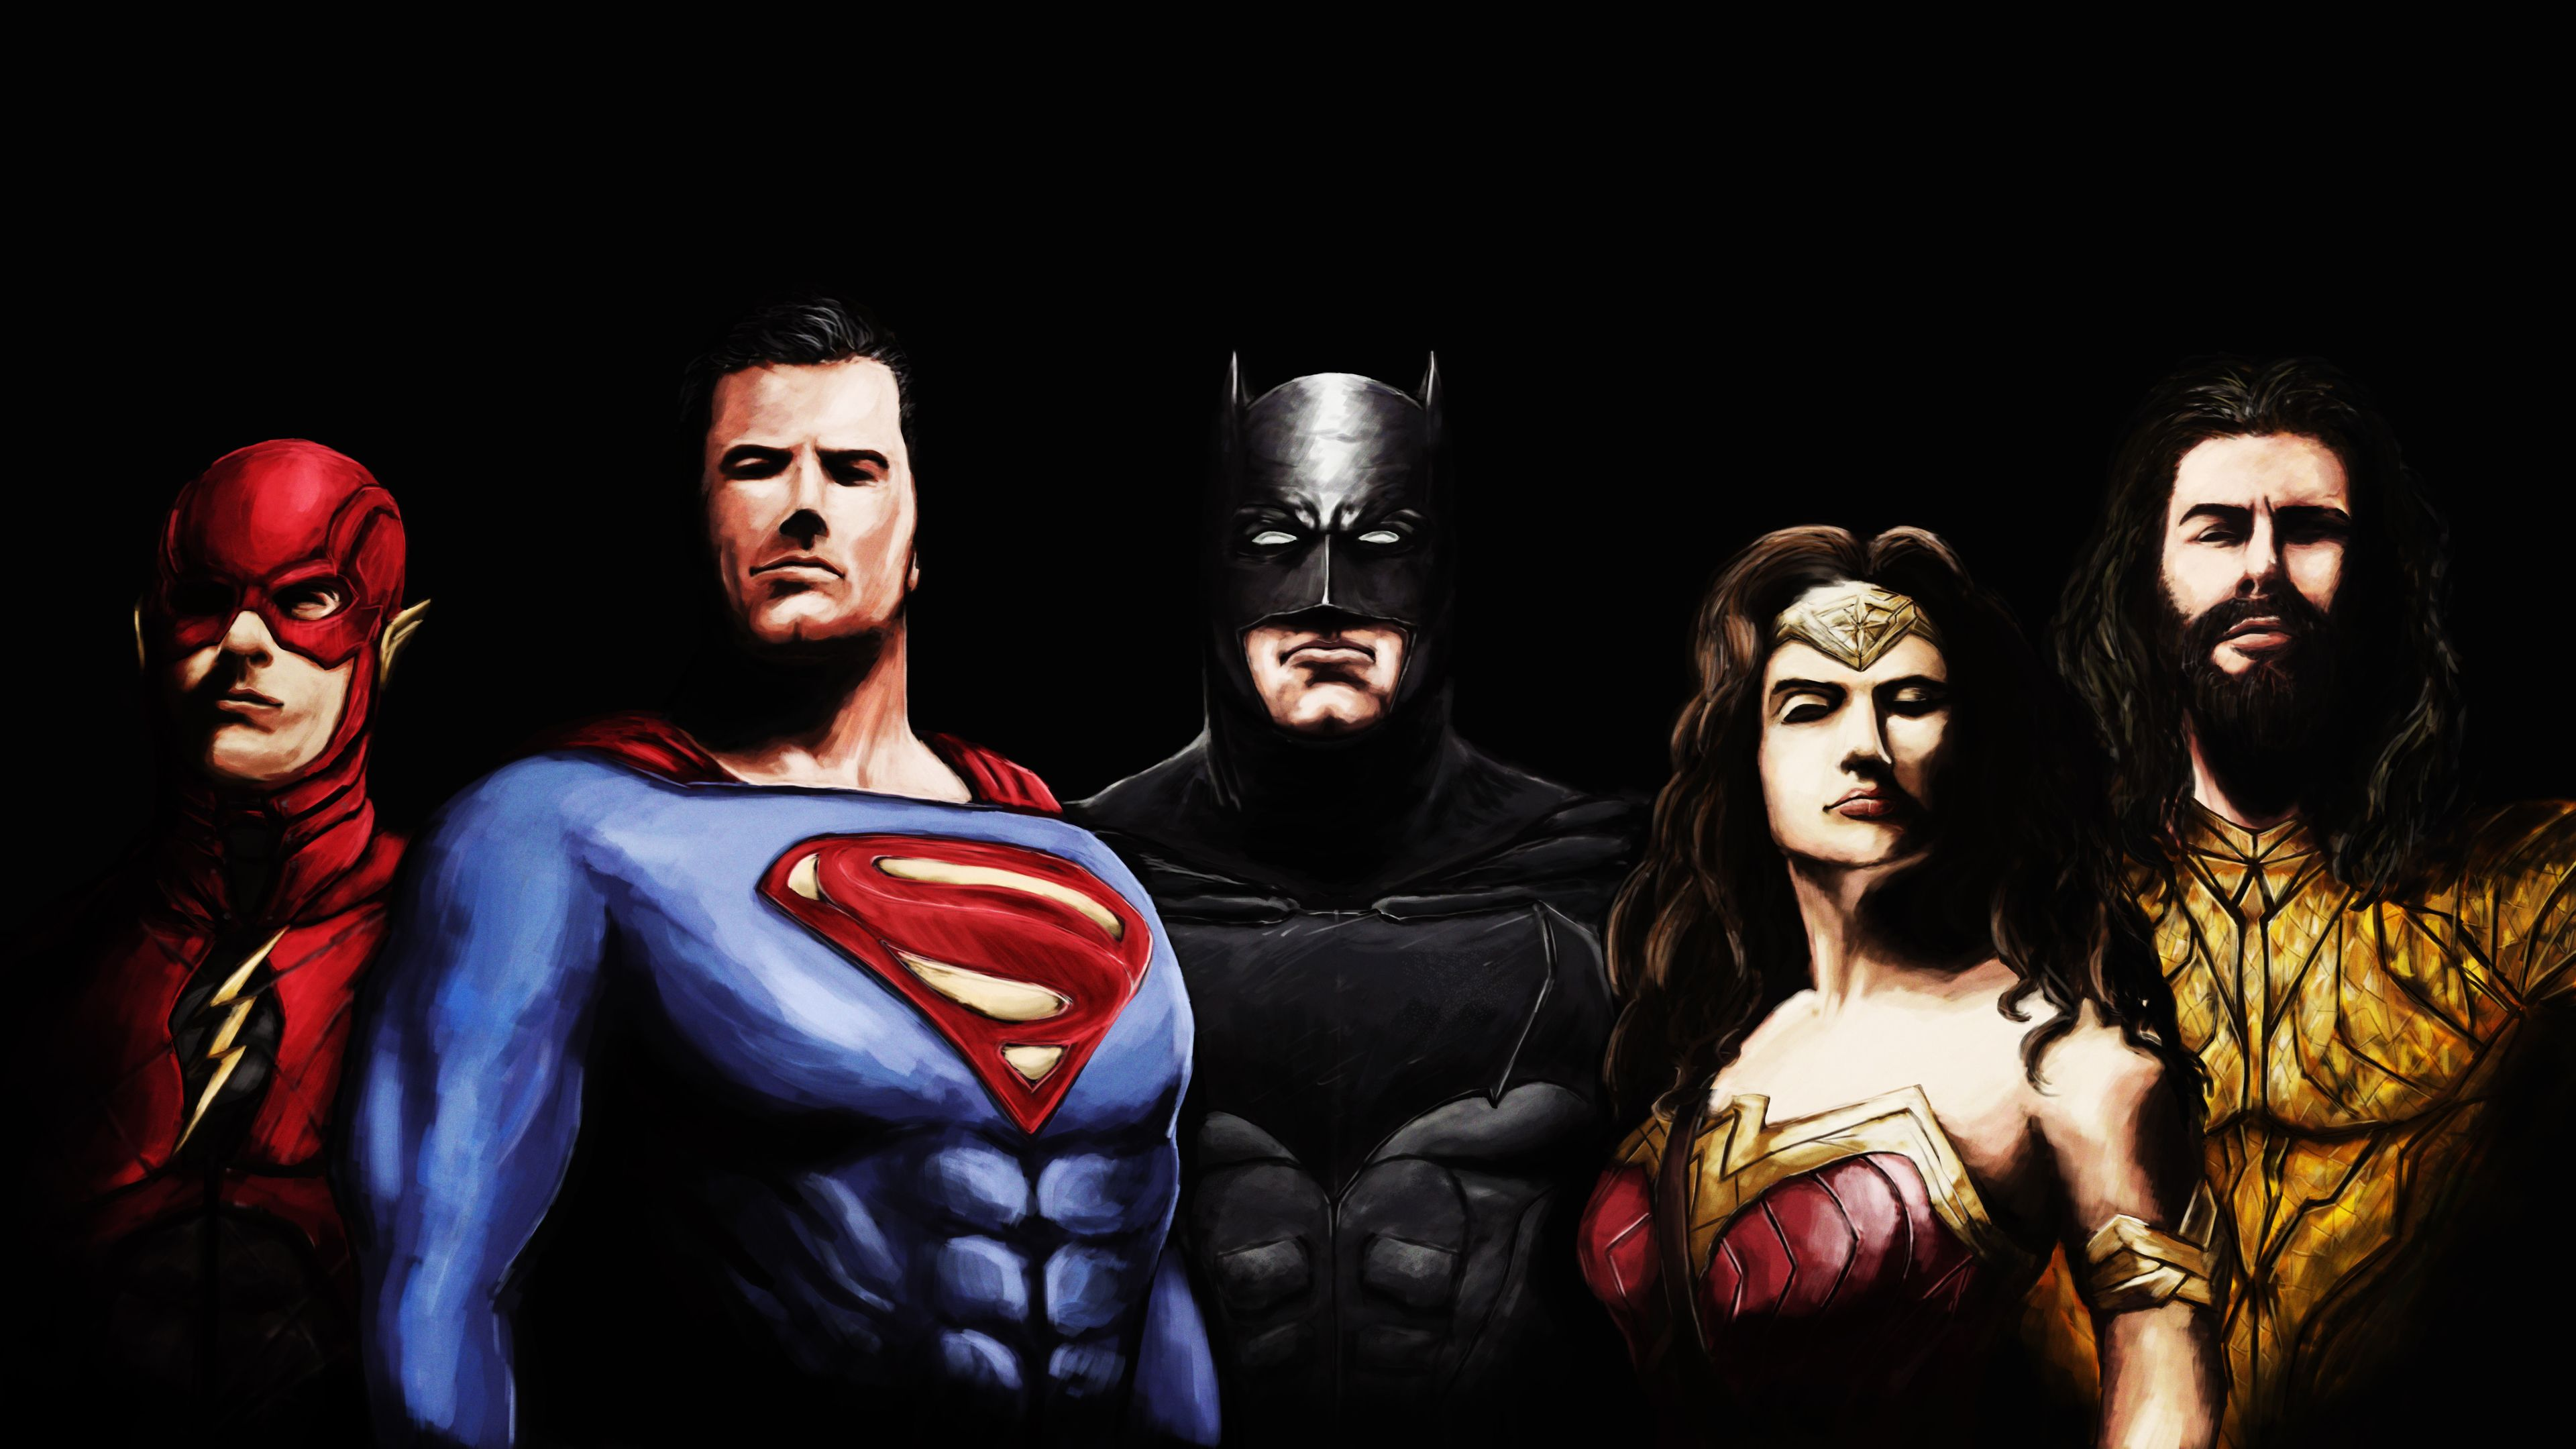 Justice League Art 4k Superheroes Wallpapers Justice League Wallpapers Hd Wallpapers Digital Art Wallpapers Dev Justice League Art Superhero Justice League